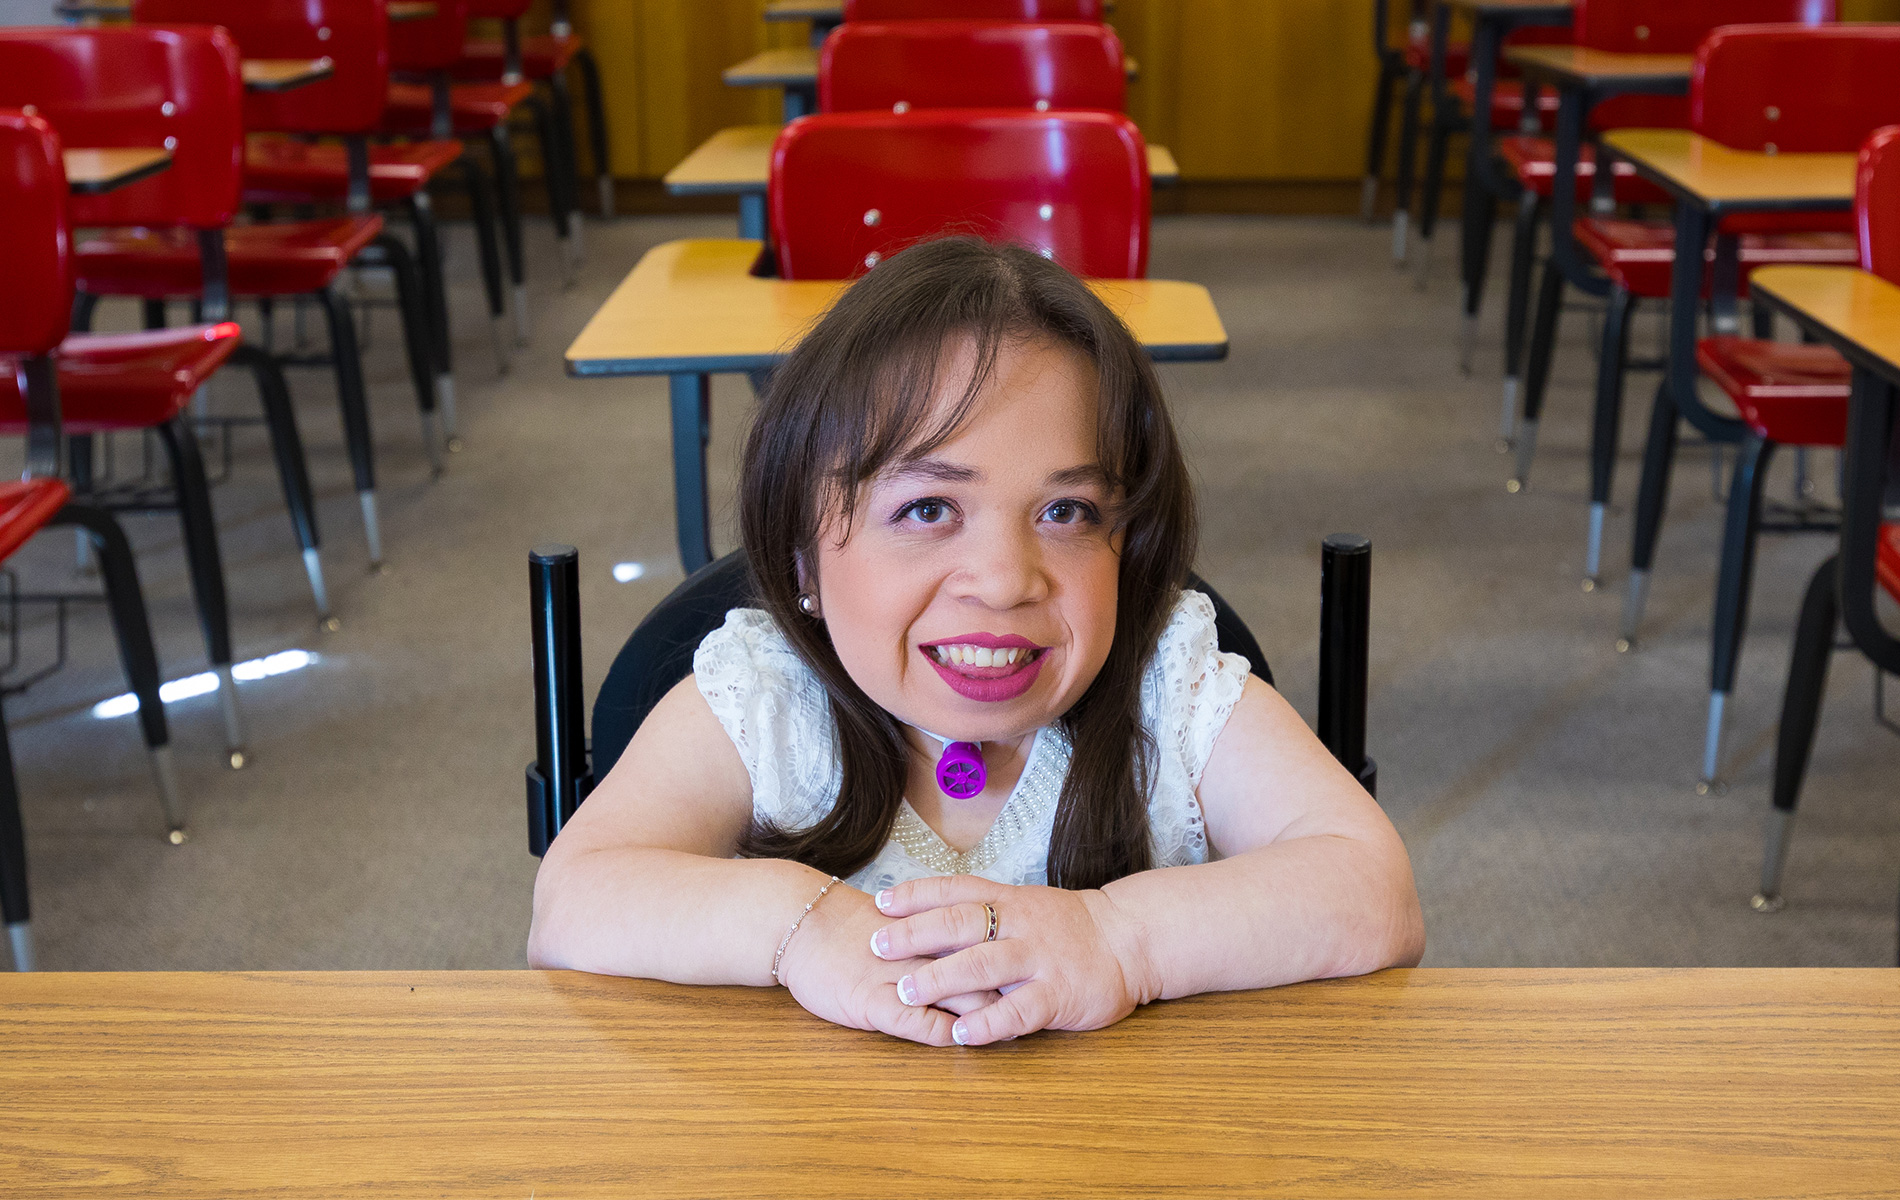 Student Isabel Bueso, who has a rare disease, poses with her hands on top of each other at a desk in a classroom